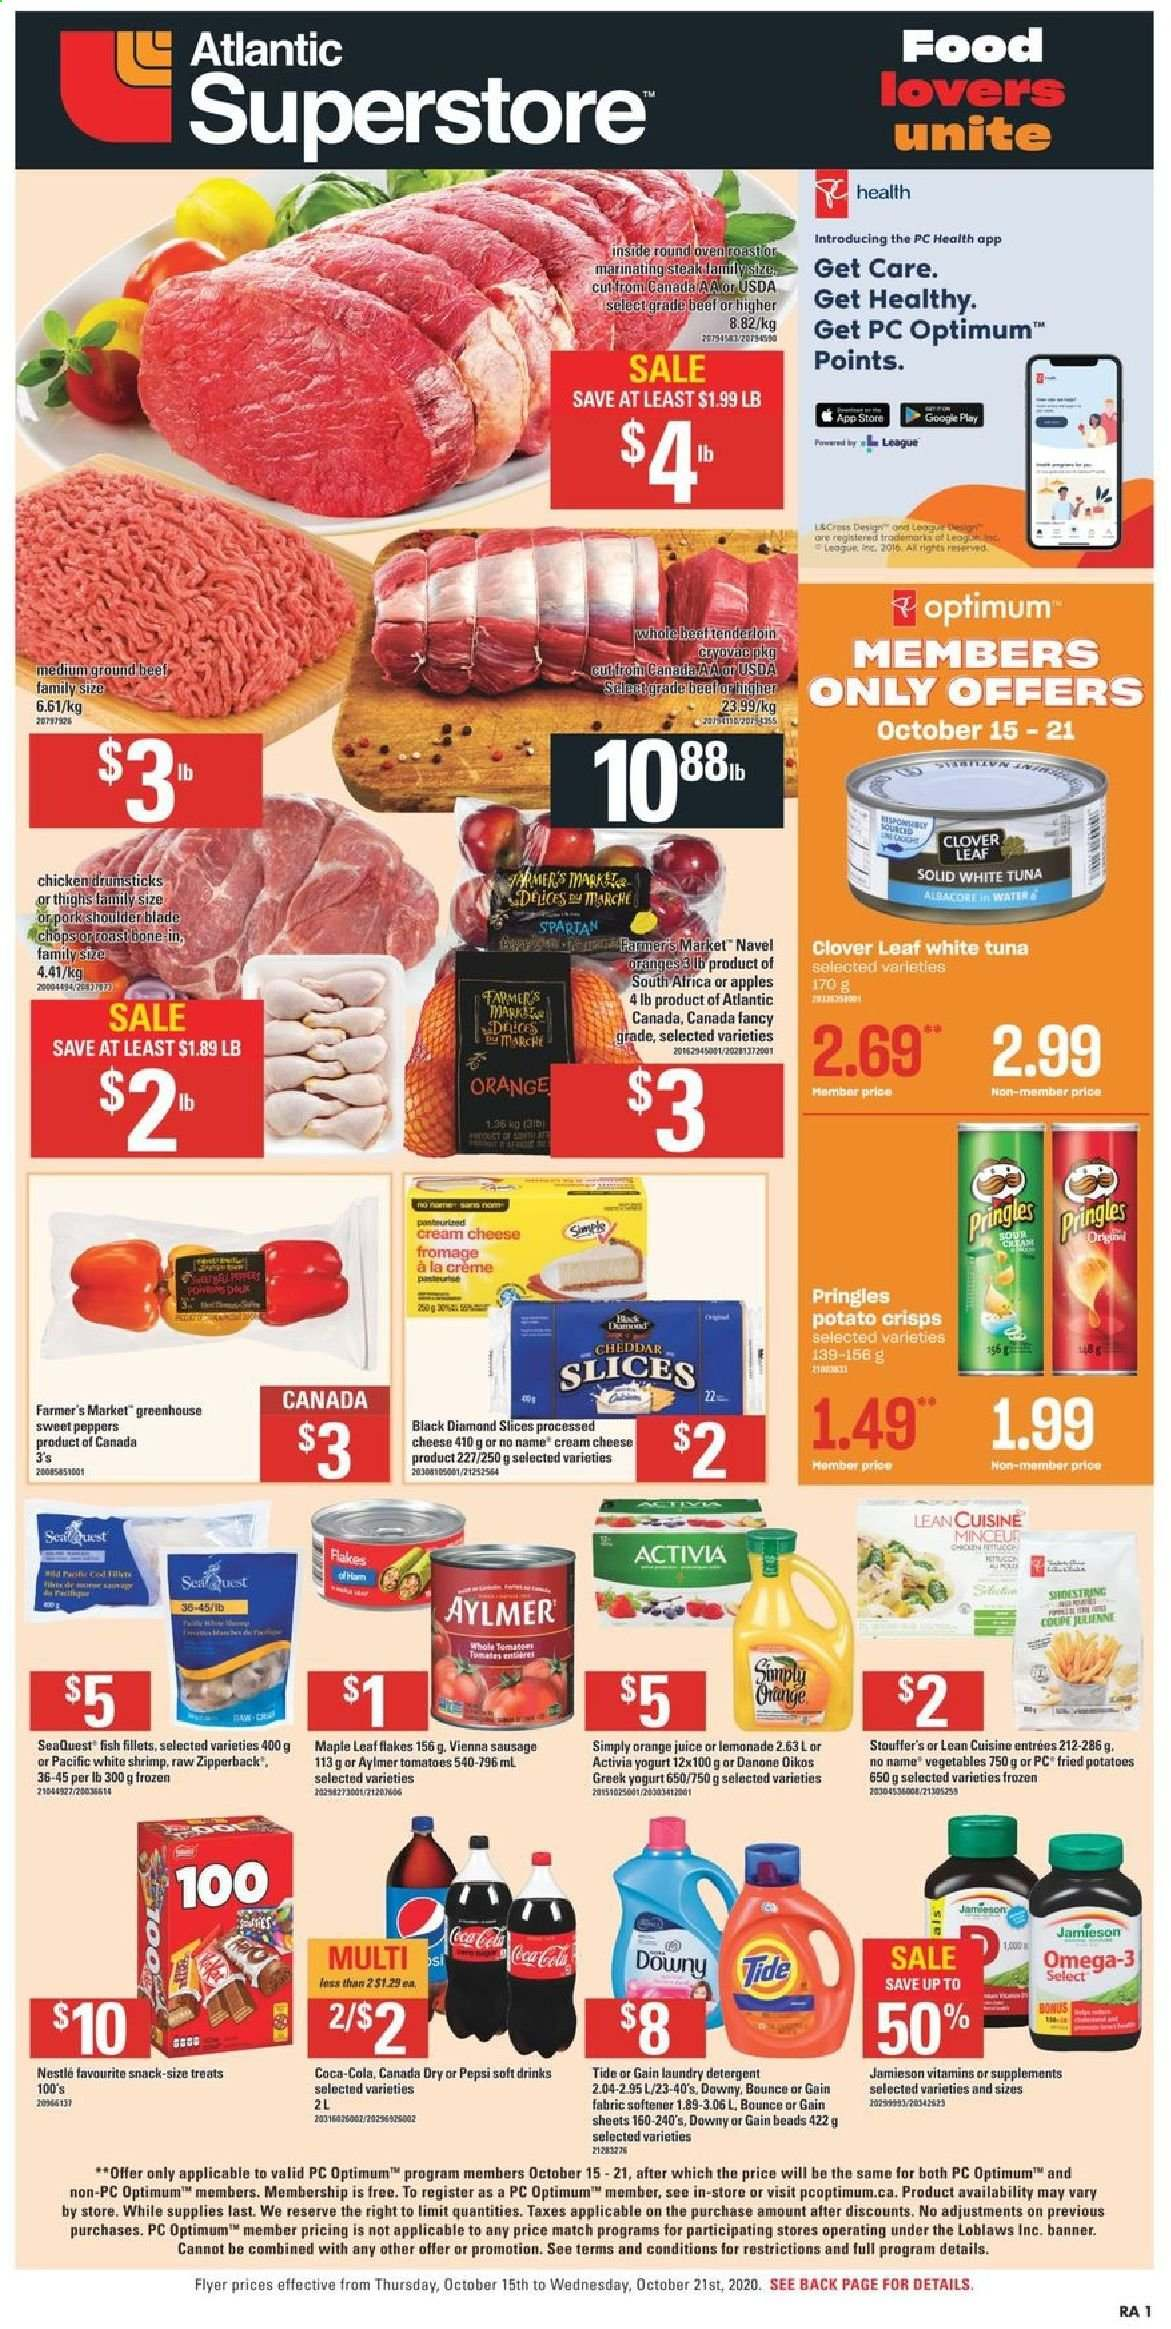 Atlantic Superstore Flyer - October 15, 2020 - October 21, 2020 - Sales products - apples, beef meat, bounce, canada dry, coca-cola, cod, cream cheese, crème, detergent, downy, fish fillets, frozen, gain, google, greek yogurt, greenhouse, lemonade, navel oranges, nestlé, sausage, shrimp, solid, sweet peppers, tide, tomatoes, tuna, vienna sausage, yogurt, pork meat, pork shoulder, potato crisps, potatoes, pringles, cheddar, chicken, chicken drumsticks, pepsi, omega-3, orange juice, oranges, steak, cheese, juice, vegetable, snack, softener, danone, flakes, activia, coupe, fromage, jamieson, orange, apple, vegetables, blade, peppers, fish, laundry detergent, roast, shrimps, tomato. Page 1.